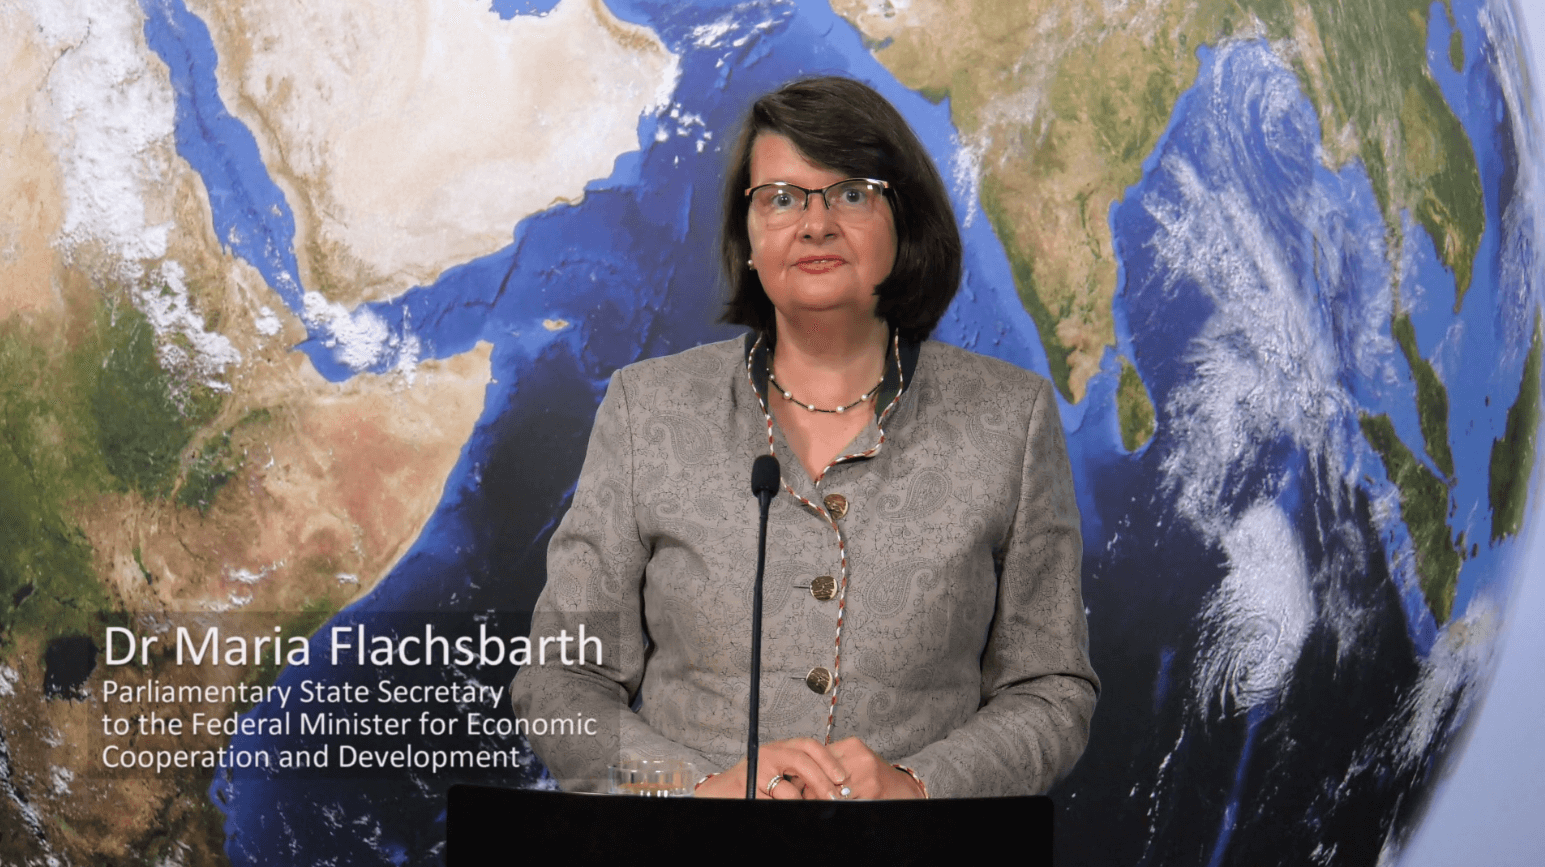 Dr. Maria Flachsbarth, Parliamentary State Secretary to the Federal Minister for Economic Cooperation and Development